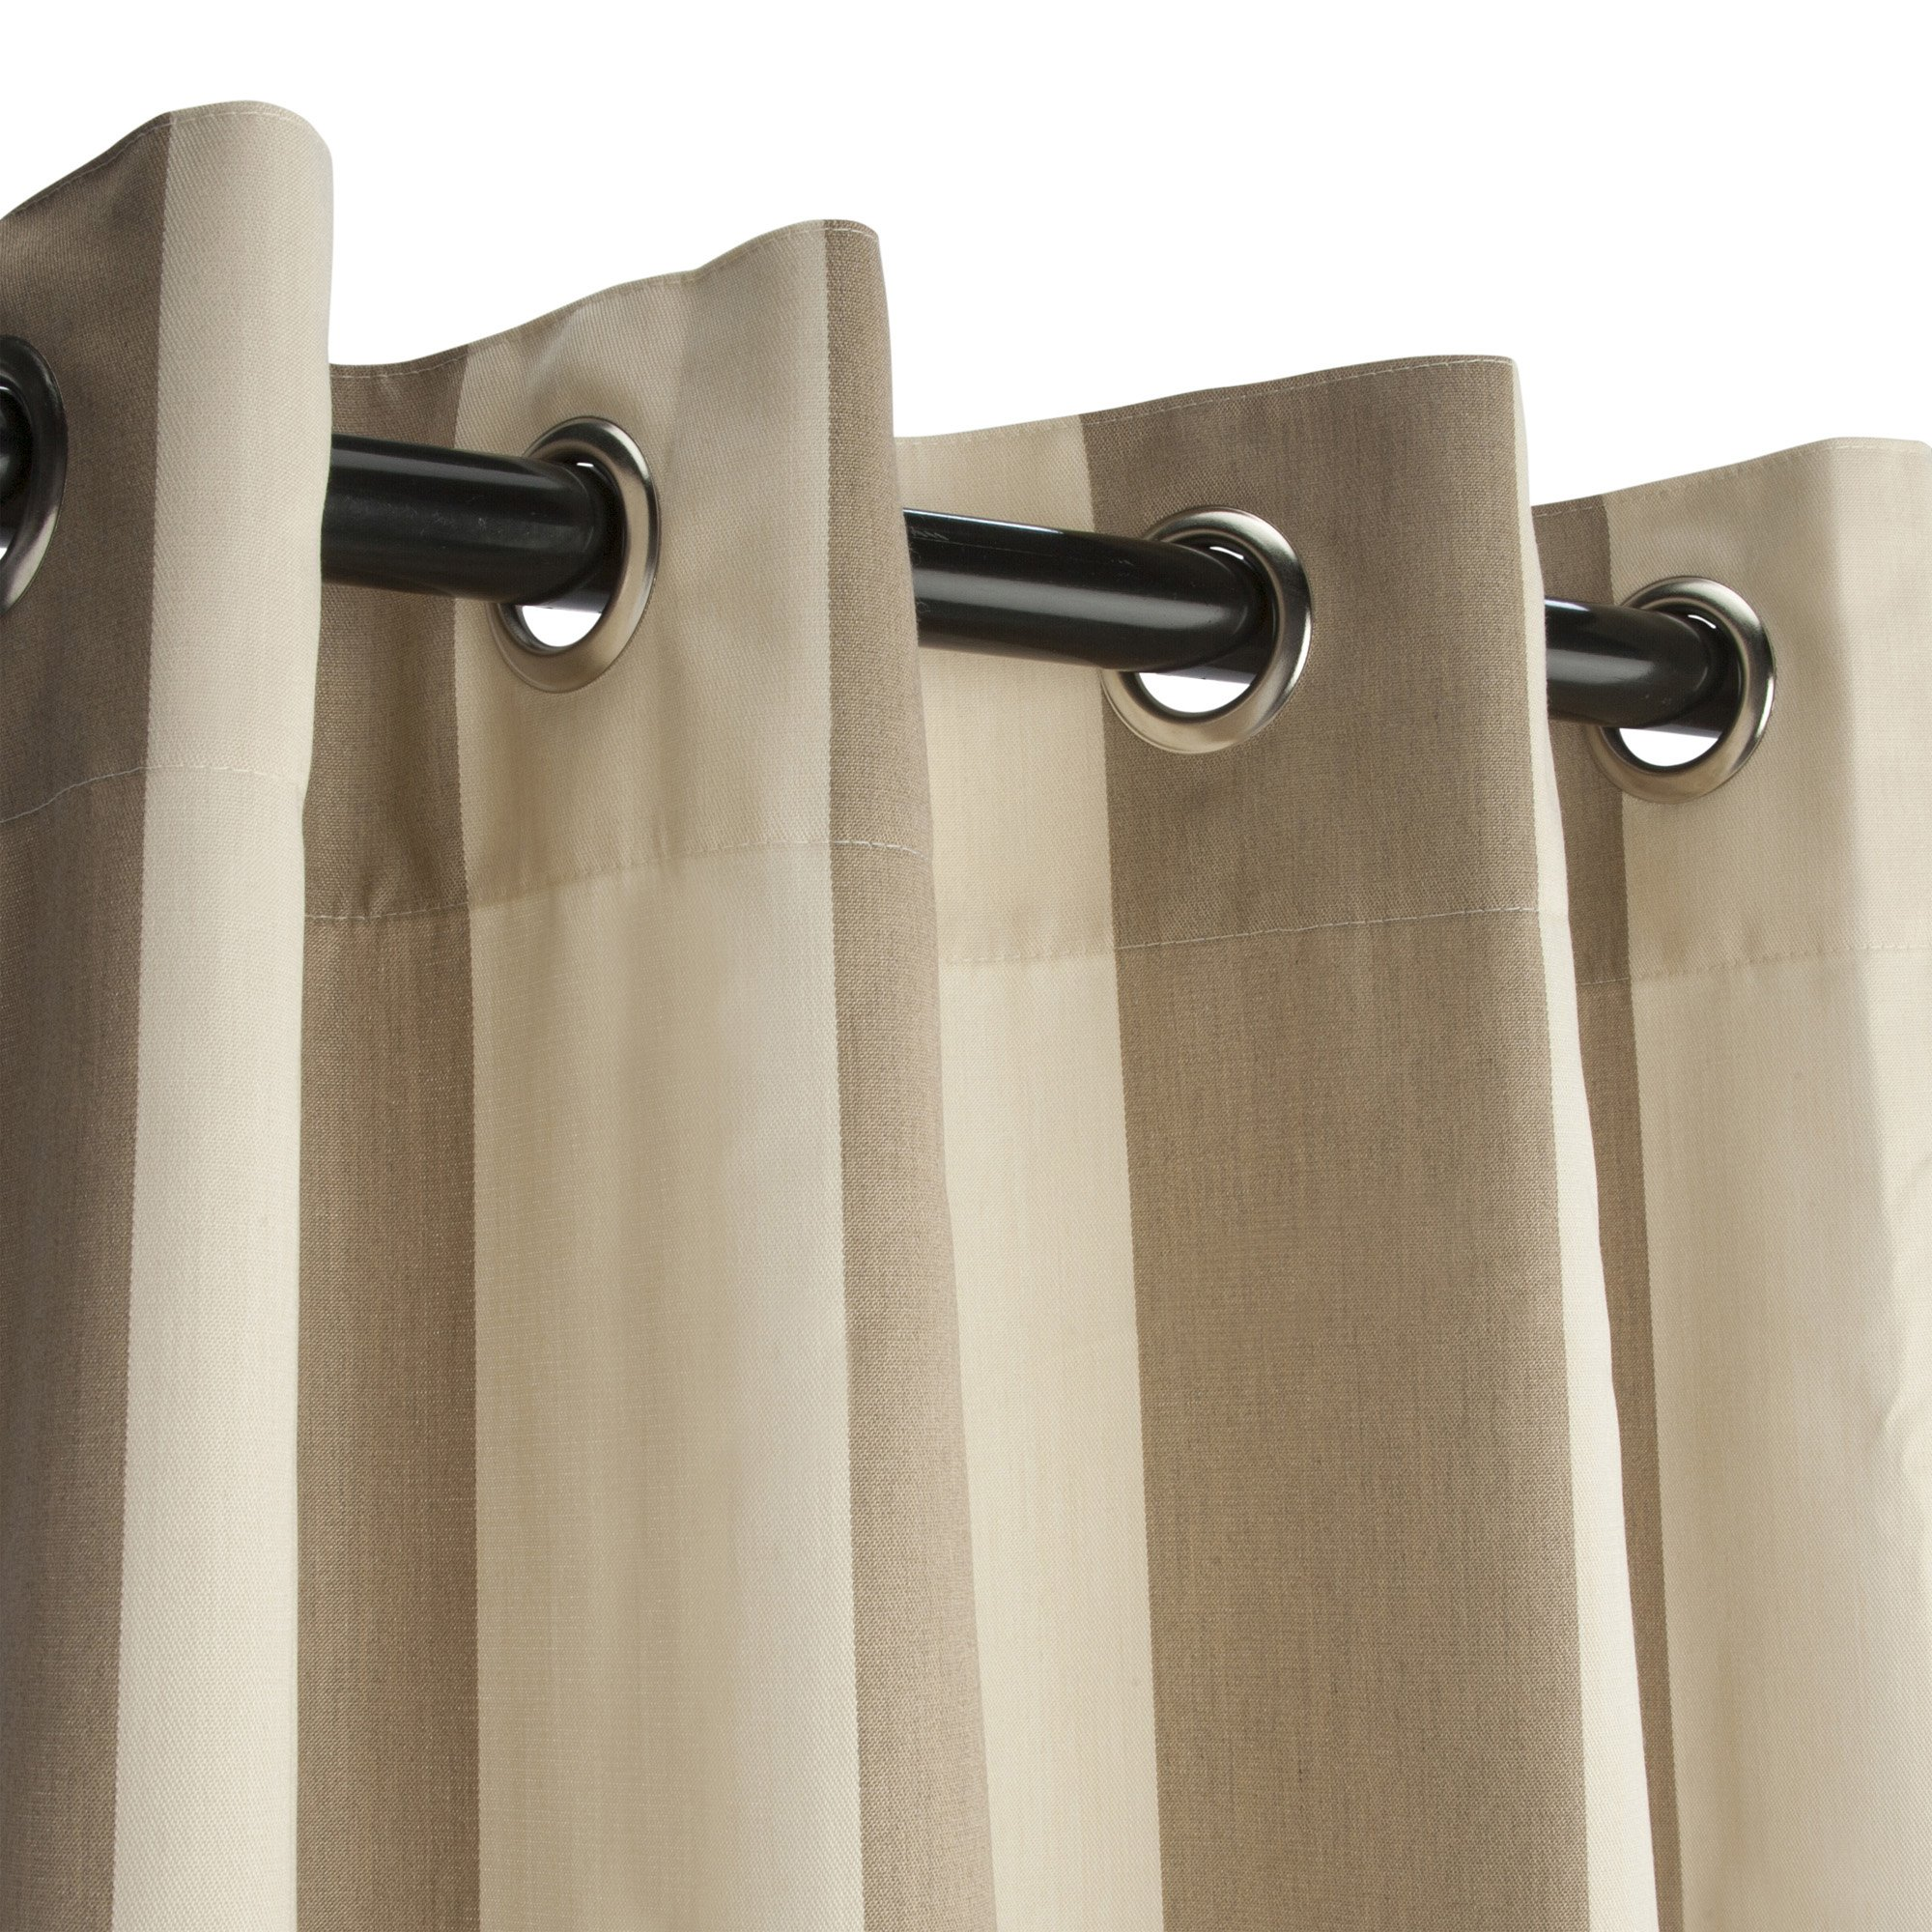 Sunbrella Outdoor Curtain Panel, Nickel Grommet Top, 50 by 120 Inch, Regency Sand (Available in Multiple Colors and Sizes) Includes Custom Storage Bag; Perfect For a Patio, Porch, Gazebo, or Pergola